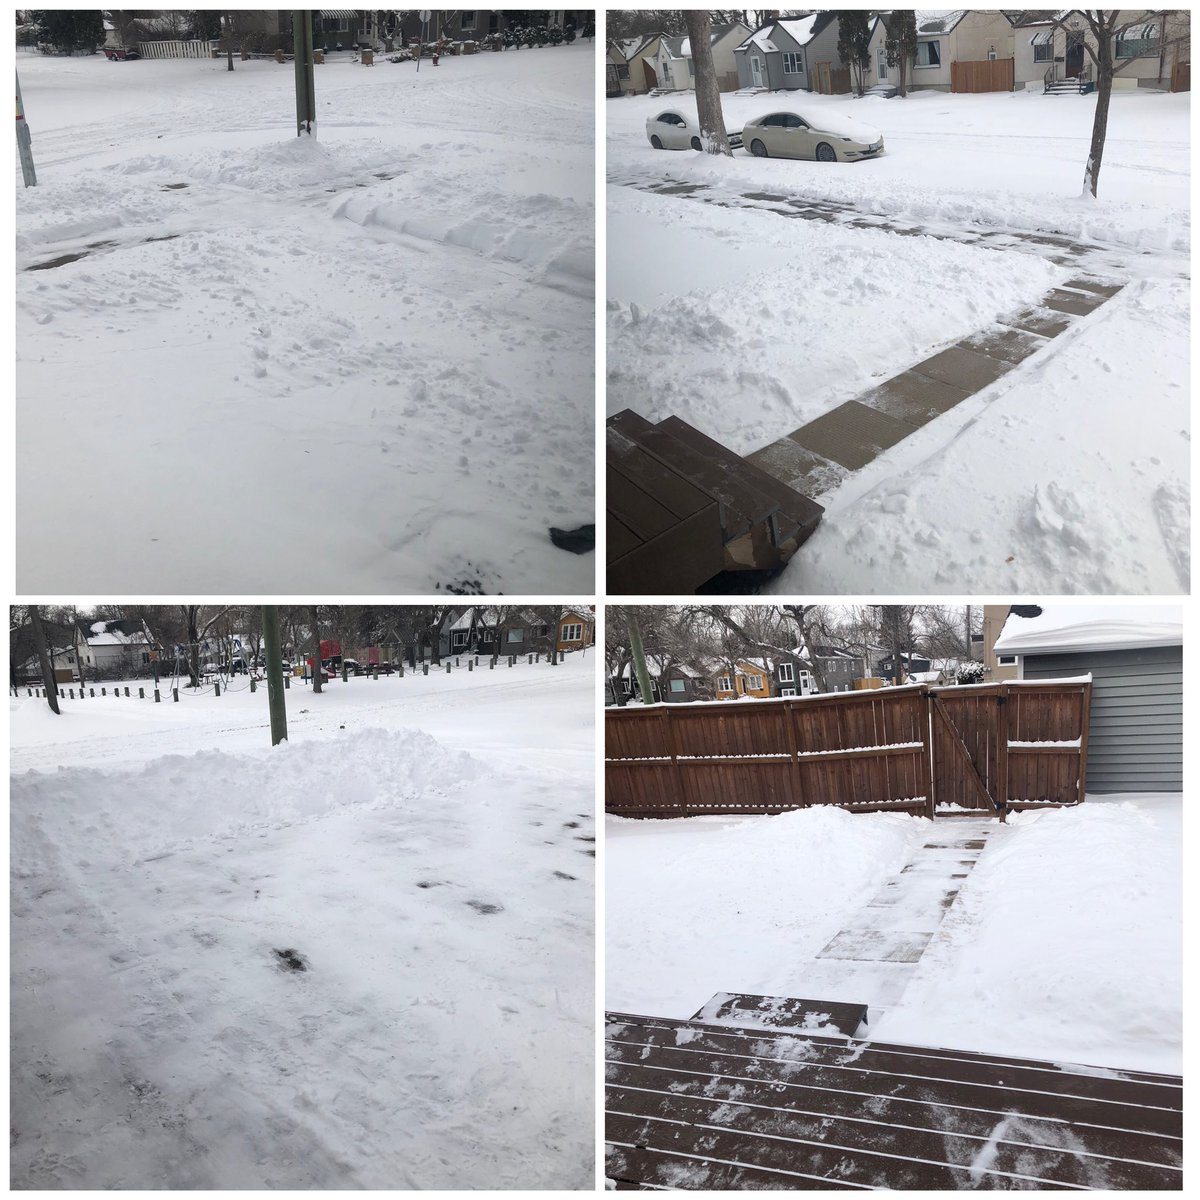 Appreciate #RHAP more than ever. Listening to podcasts while shovelling for hours. (There was no snow on the ground just over 24 hours ago). Thank you @robcesternino. #Winnipeg #somuchsnow #stayhomeandshovelpic.twitter.com/JnSCDux1Z5